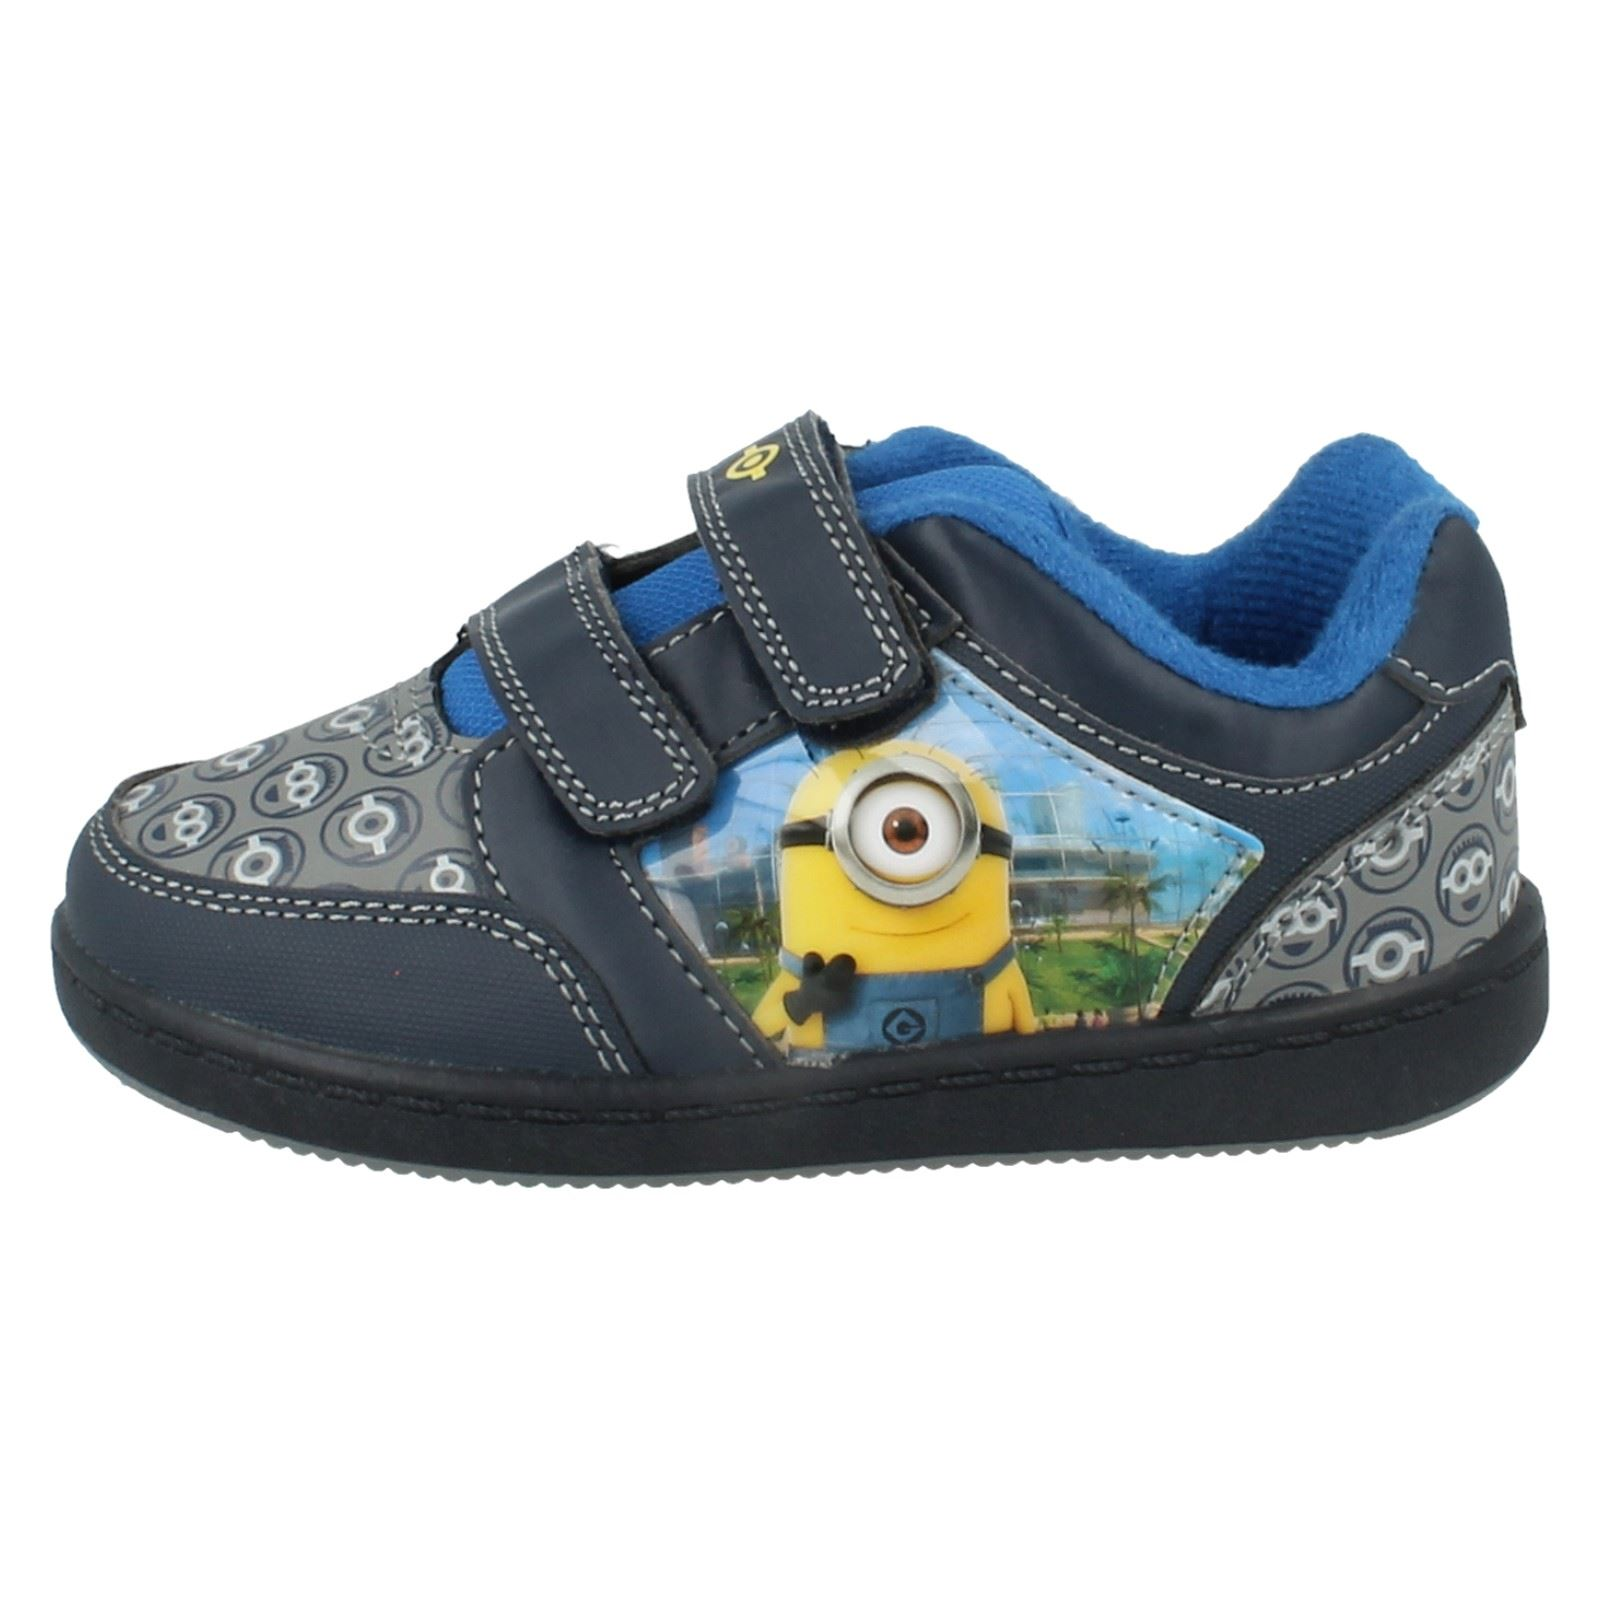 Chicos Minions entrenadores NYC escena Low Top